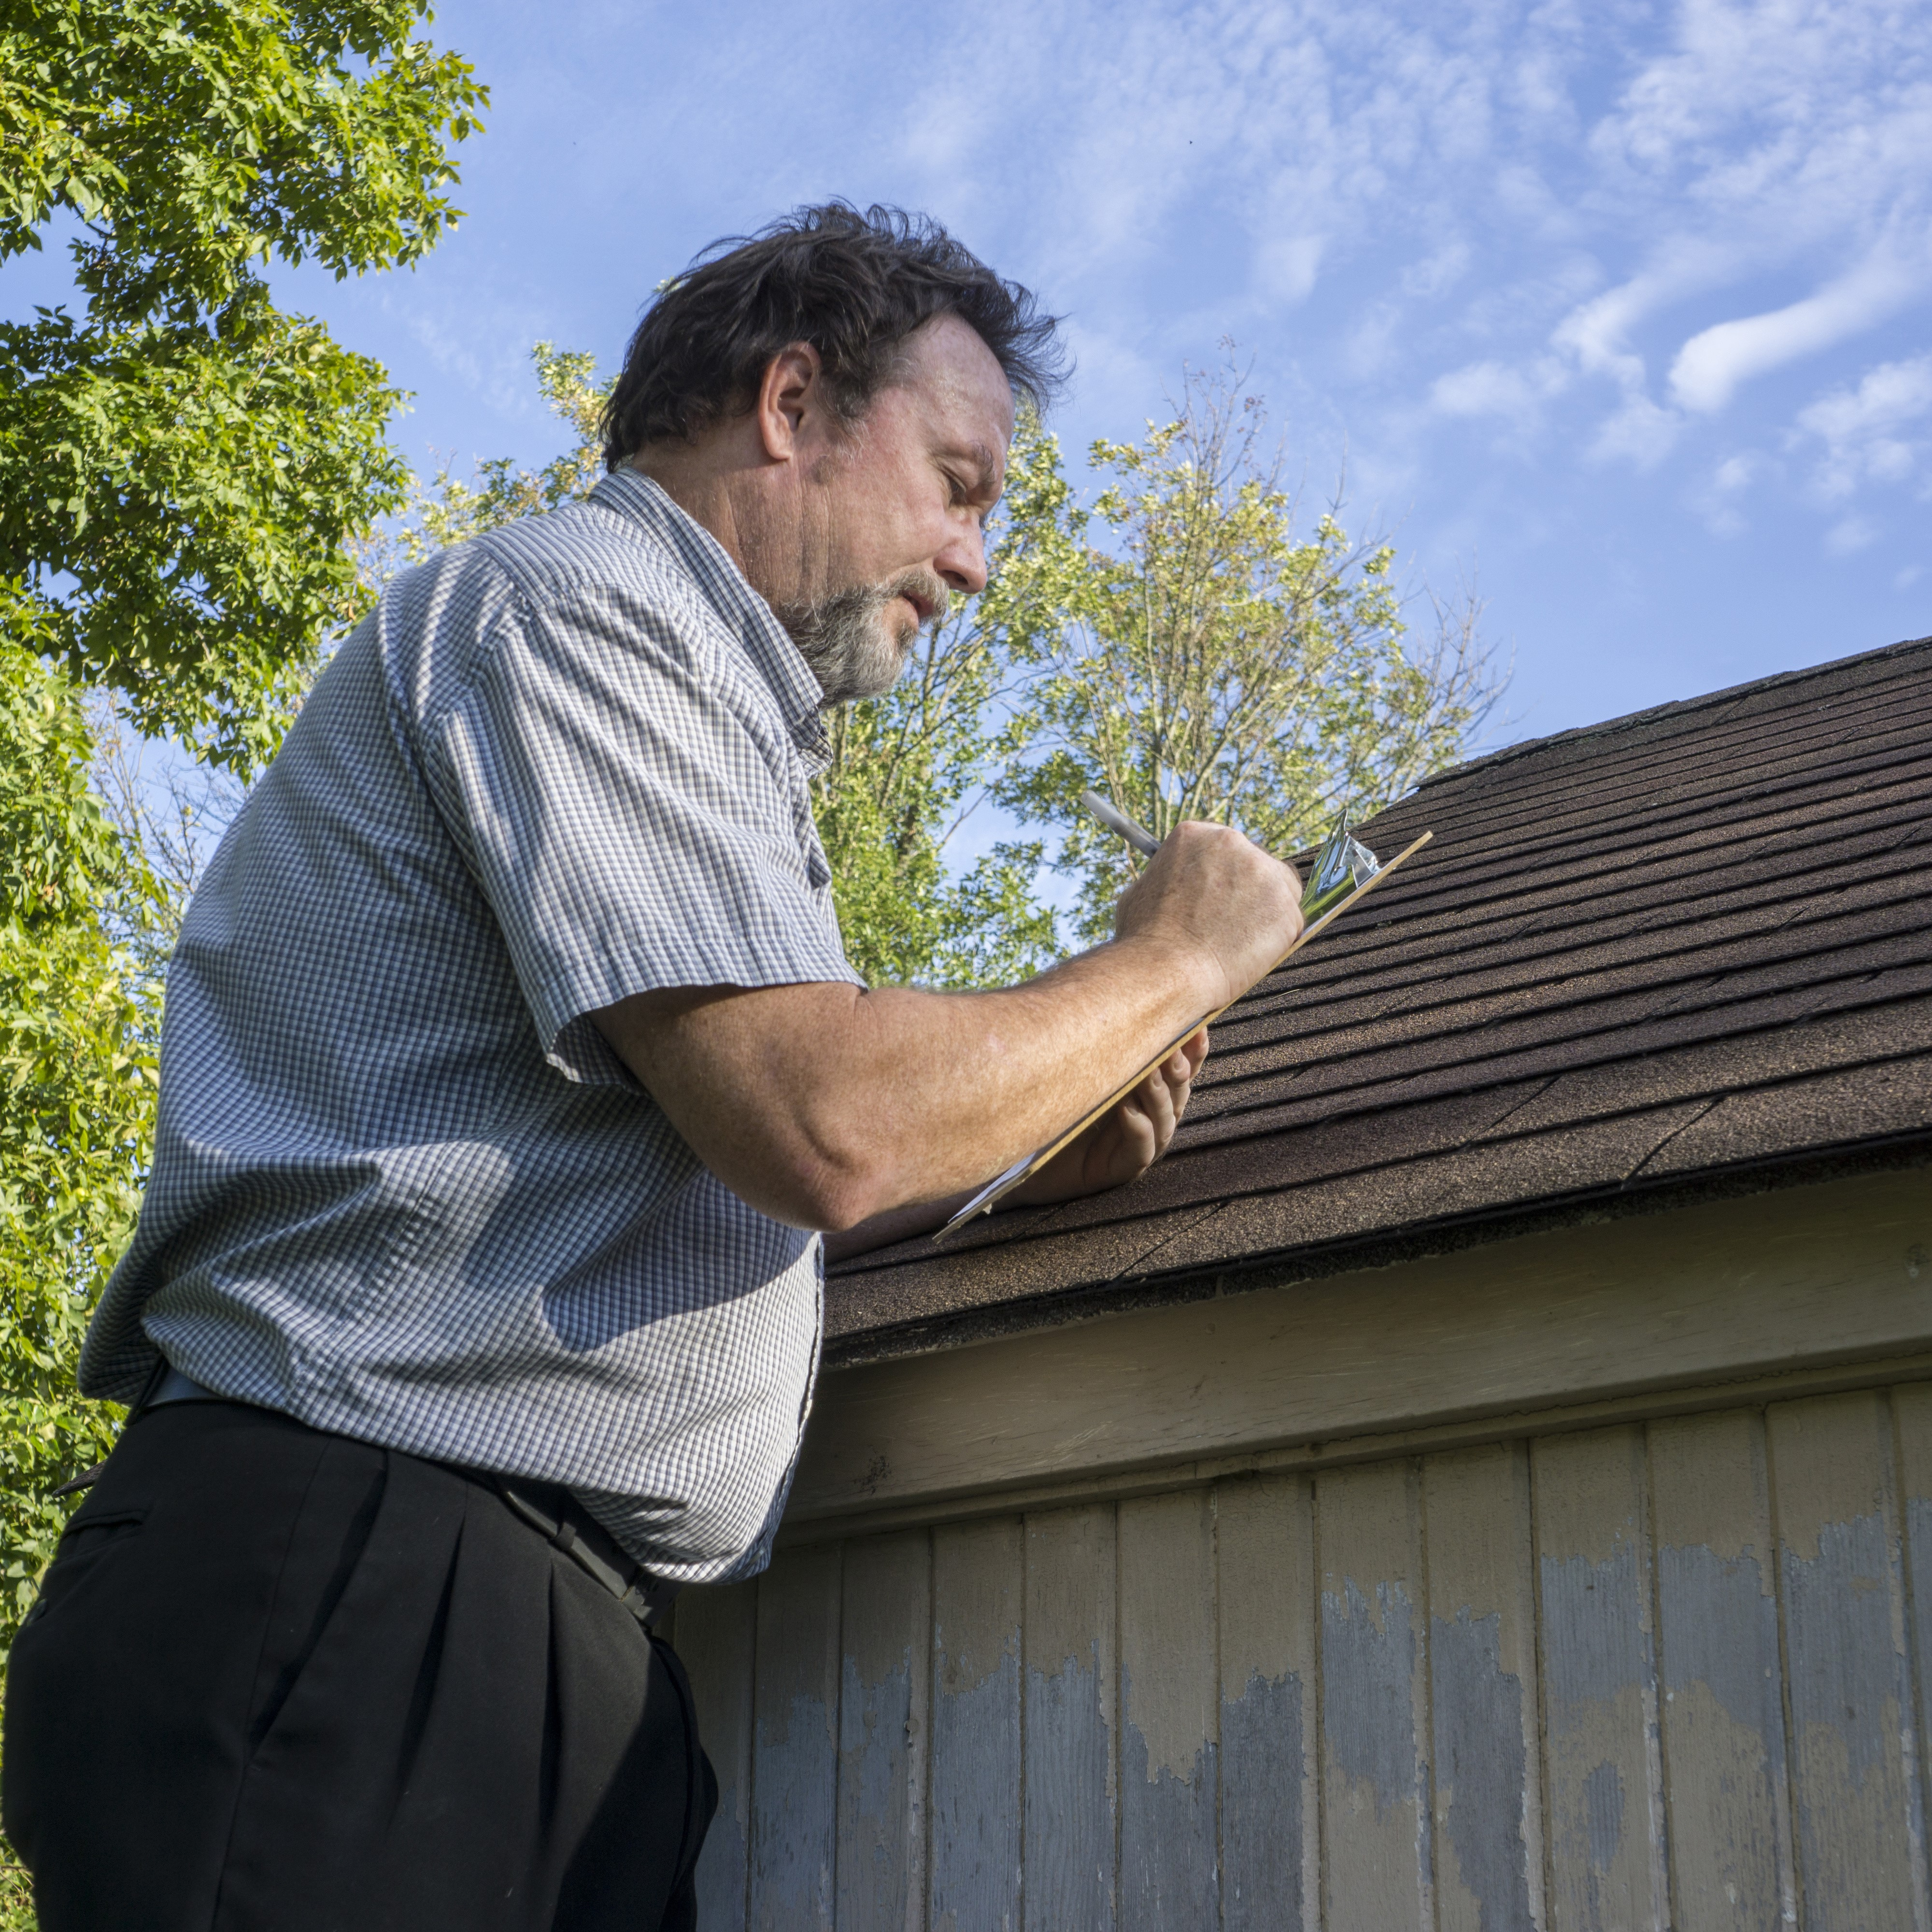 A roofing contractor inspecting a roof.